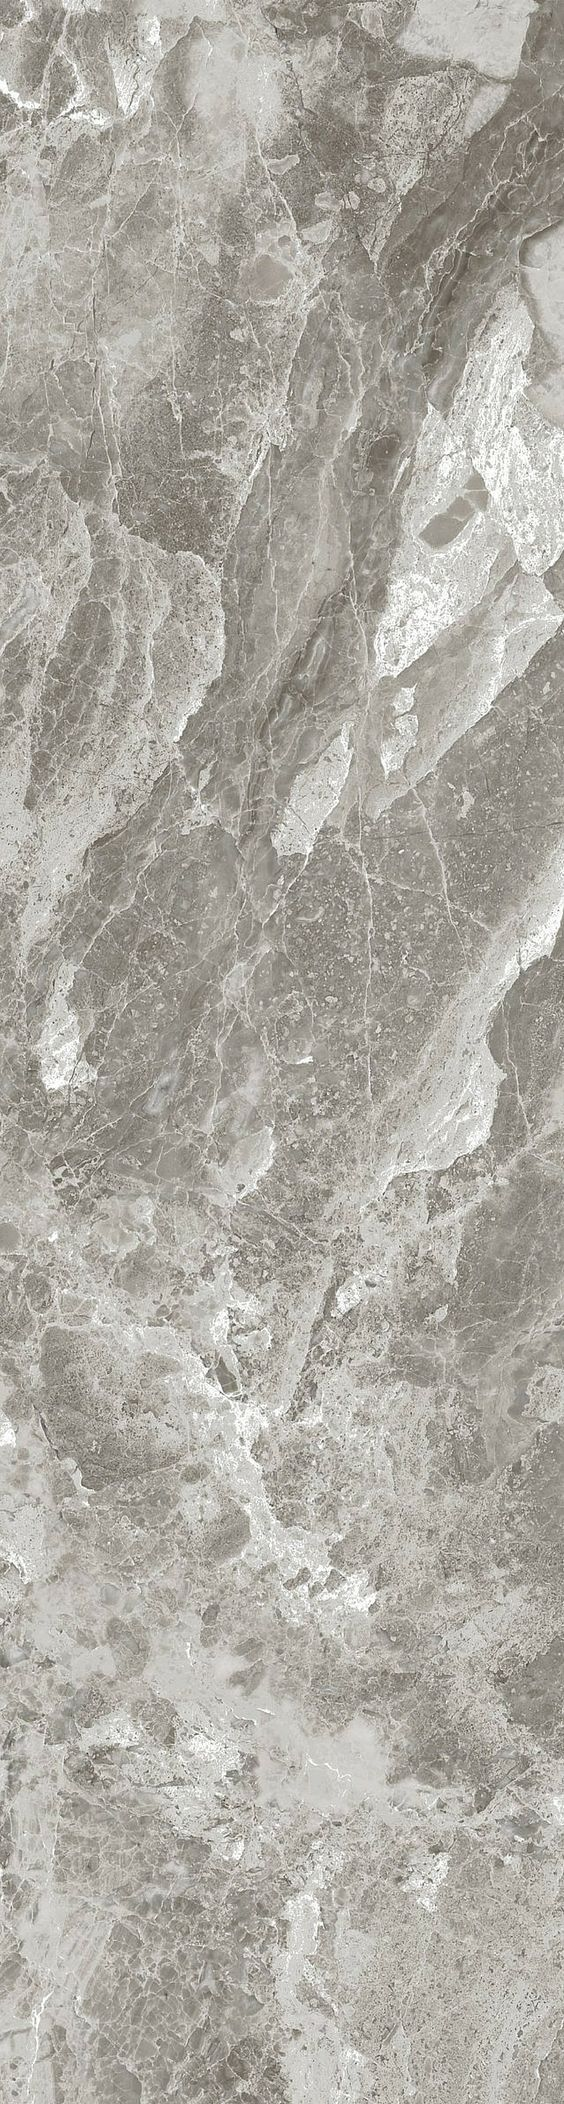 Porcelain Tile   Marble Look Classic Bardiglietto…::